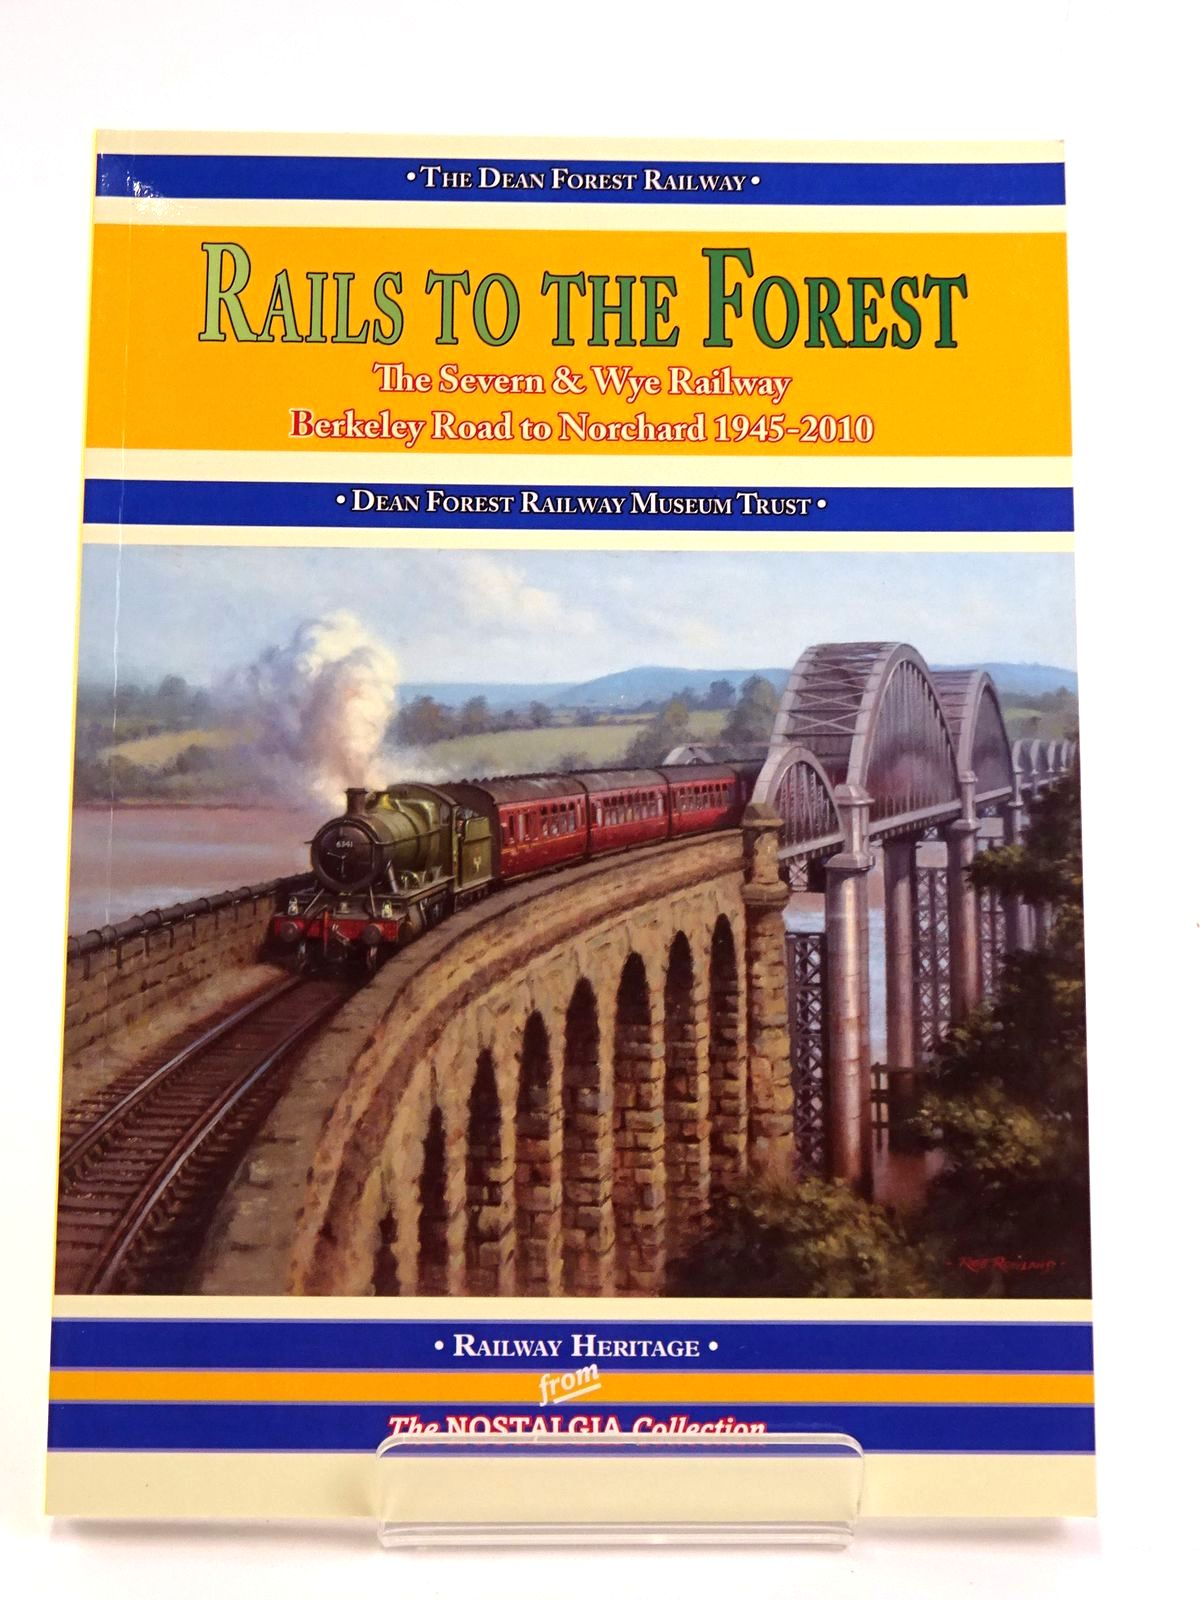 Photo of RAILS TO THE FOREST: THE SEVERN & WYE RAILWAY FROM BERKELEY ROAD TO NORCHARD 1945-2010 published by Silver Link Publishing (STOCK CODE: 1818404)  for sale by Stella & Rose's Books